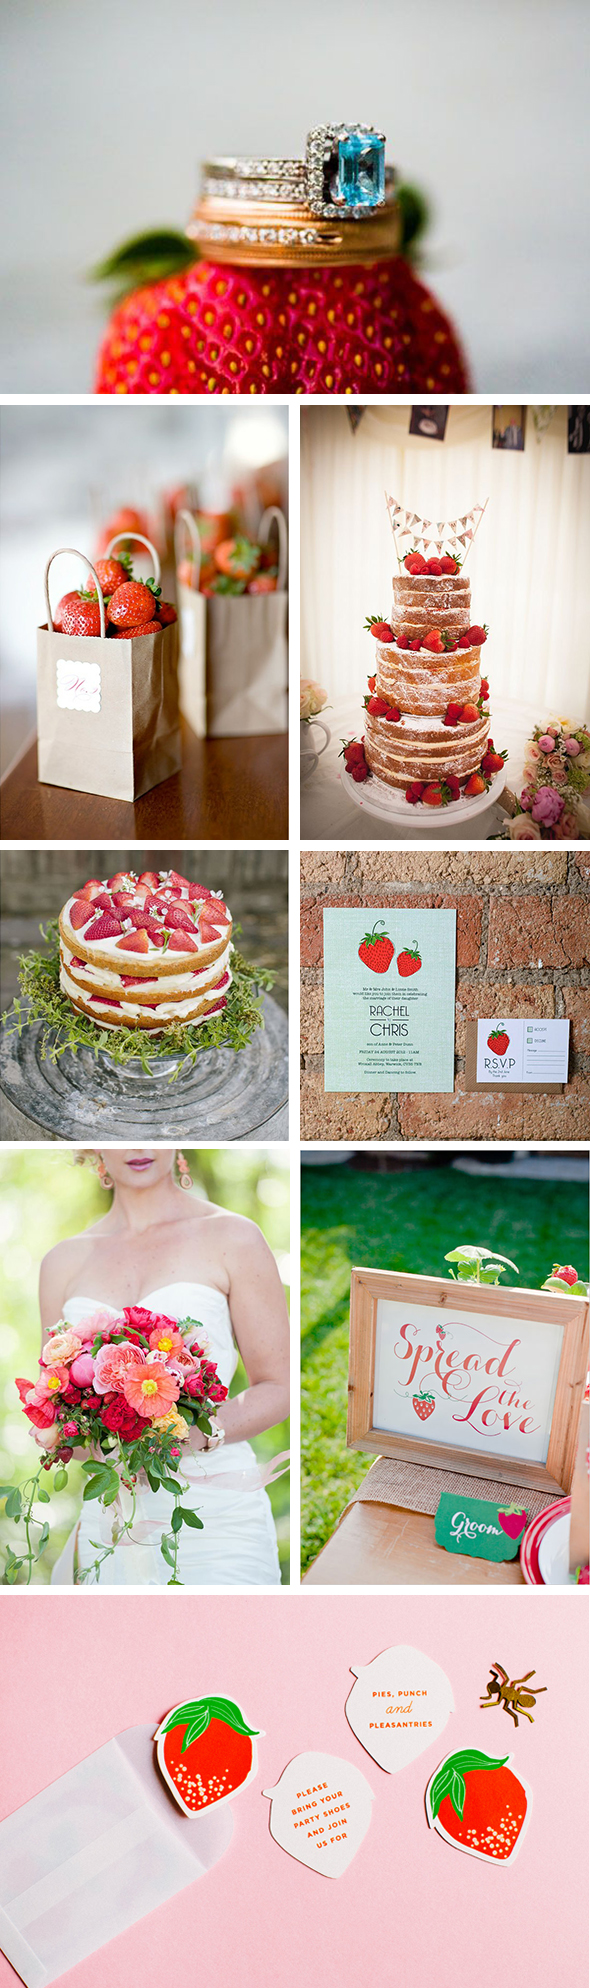 strawberry wedding  Strawberry Wedding Inspiration